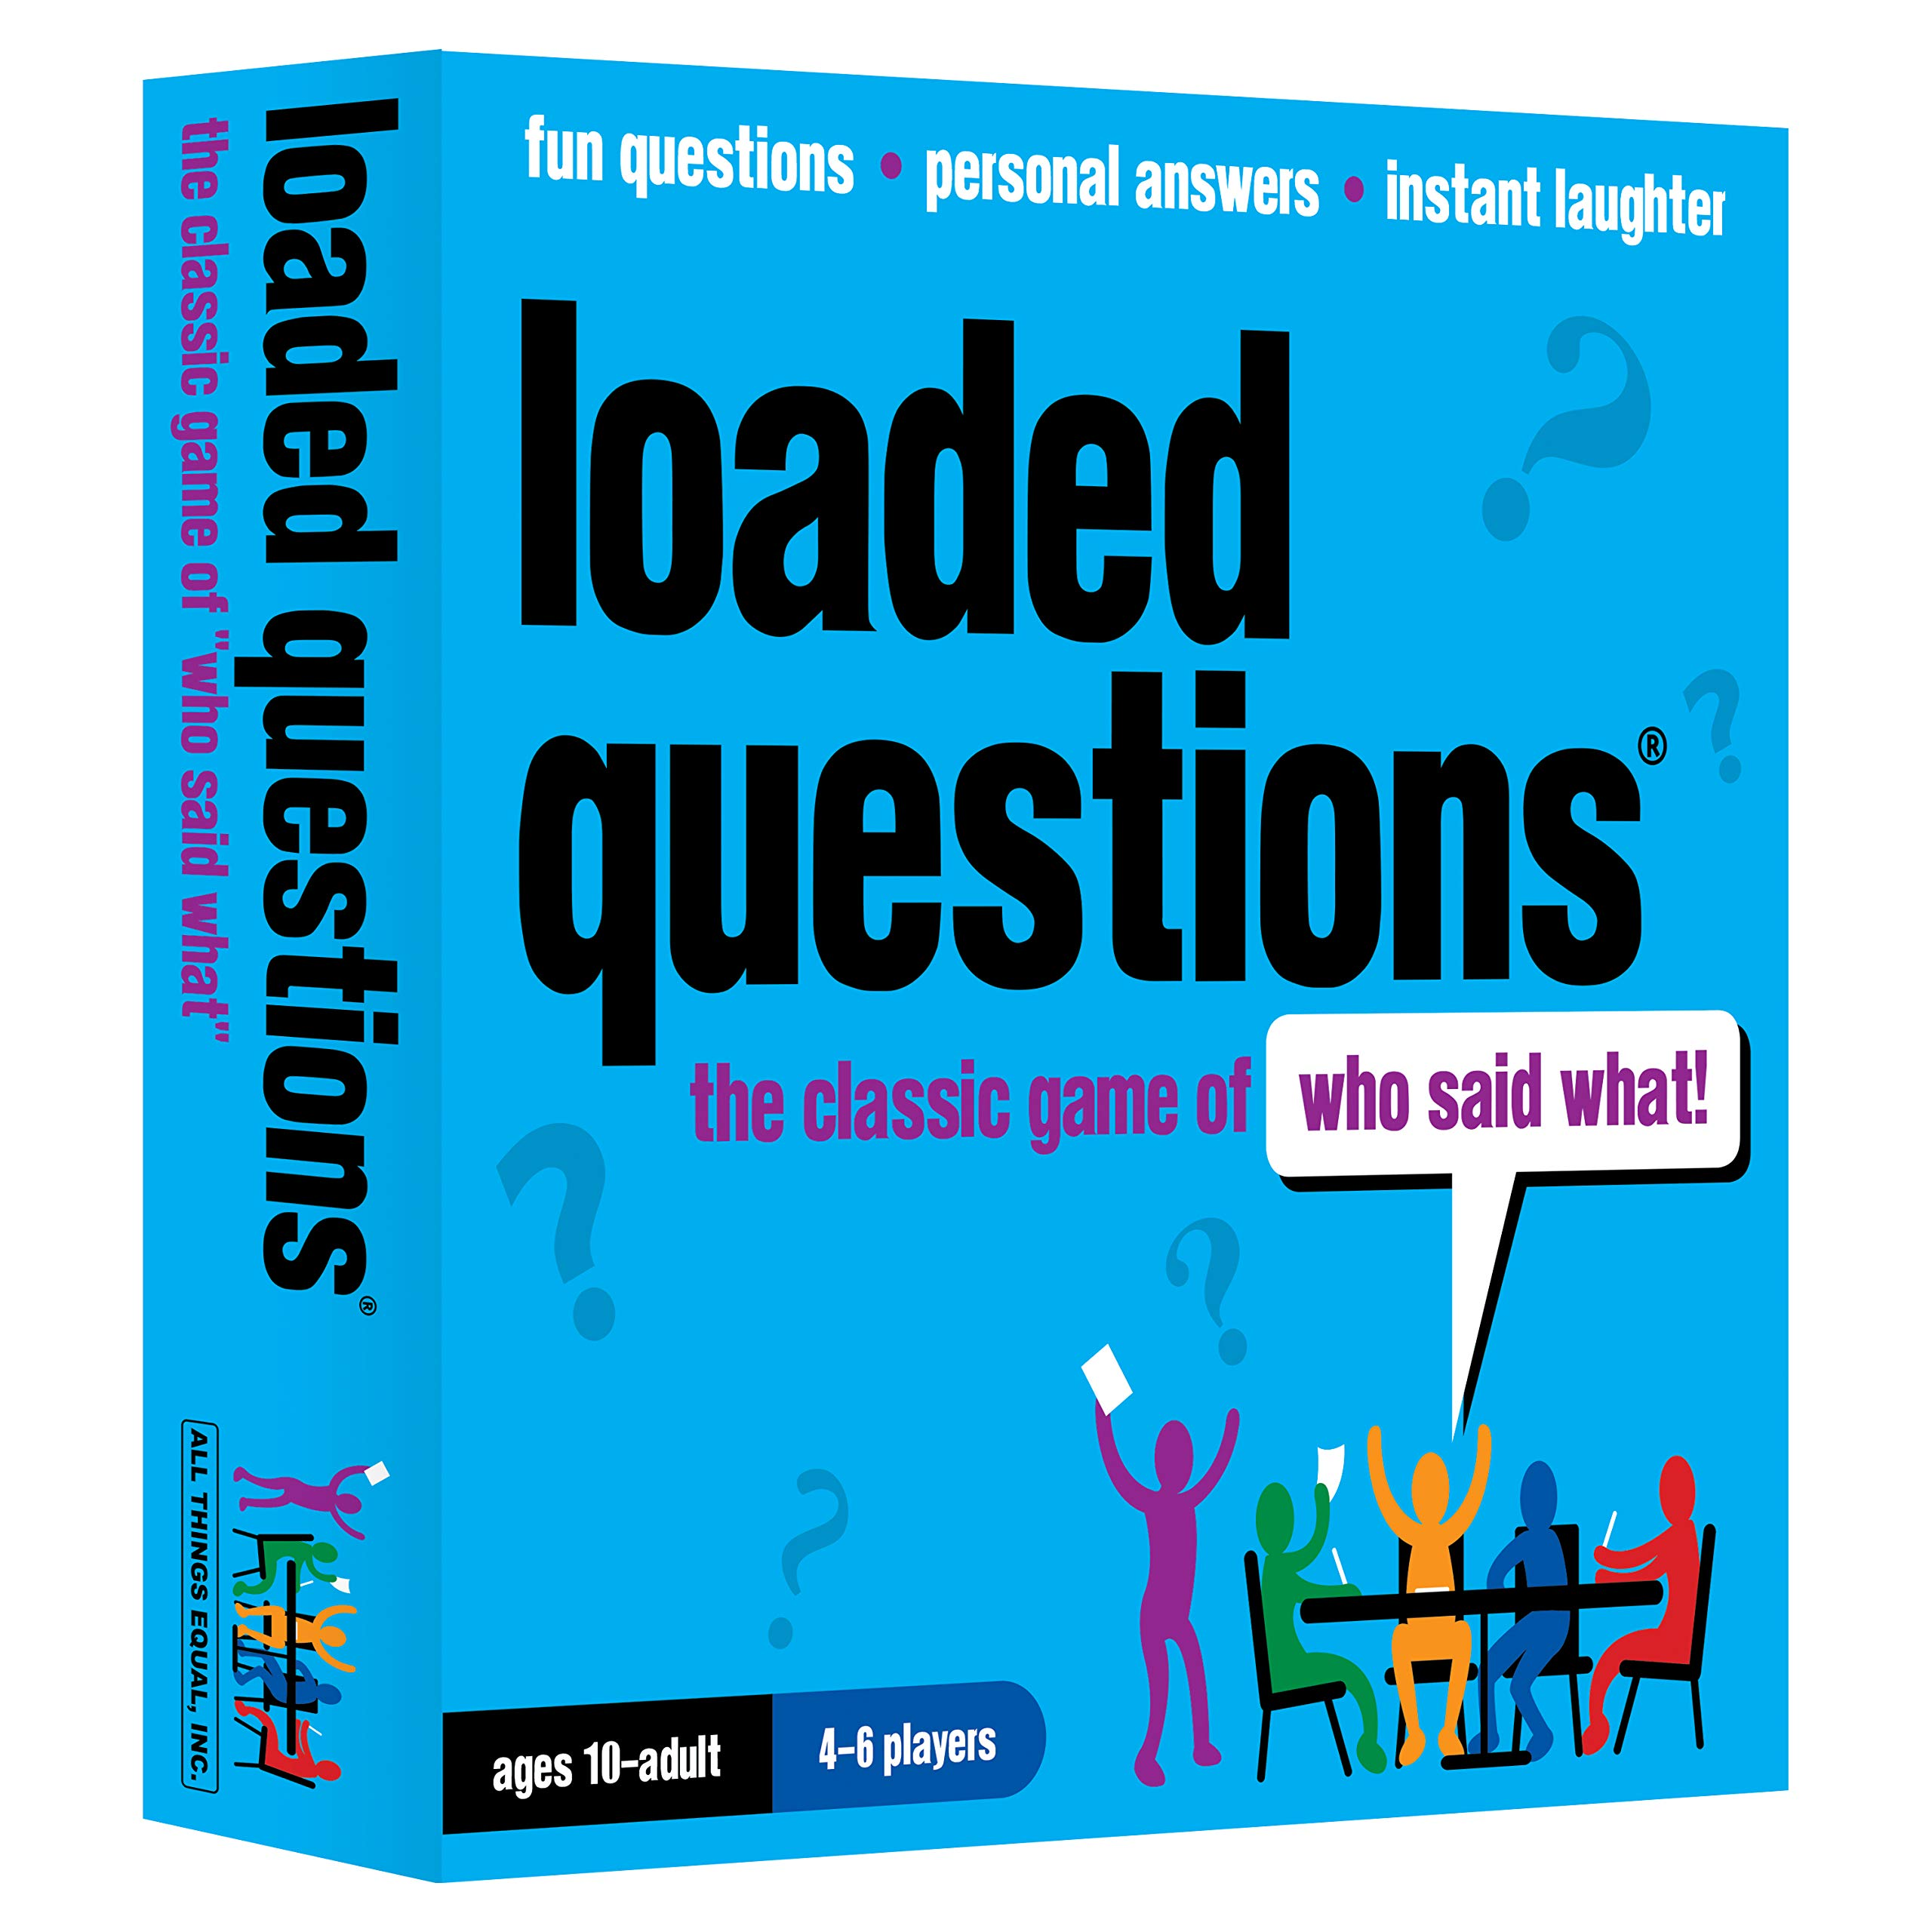 Loaded Questions – The Family/Friends Version of the Classic Game of 'Who Said What'